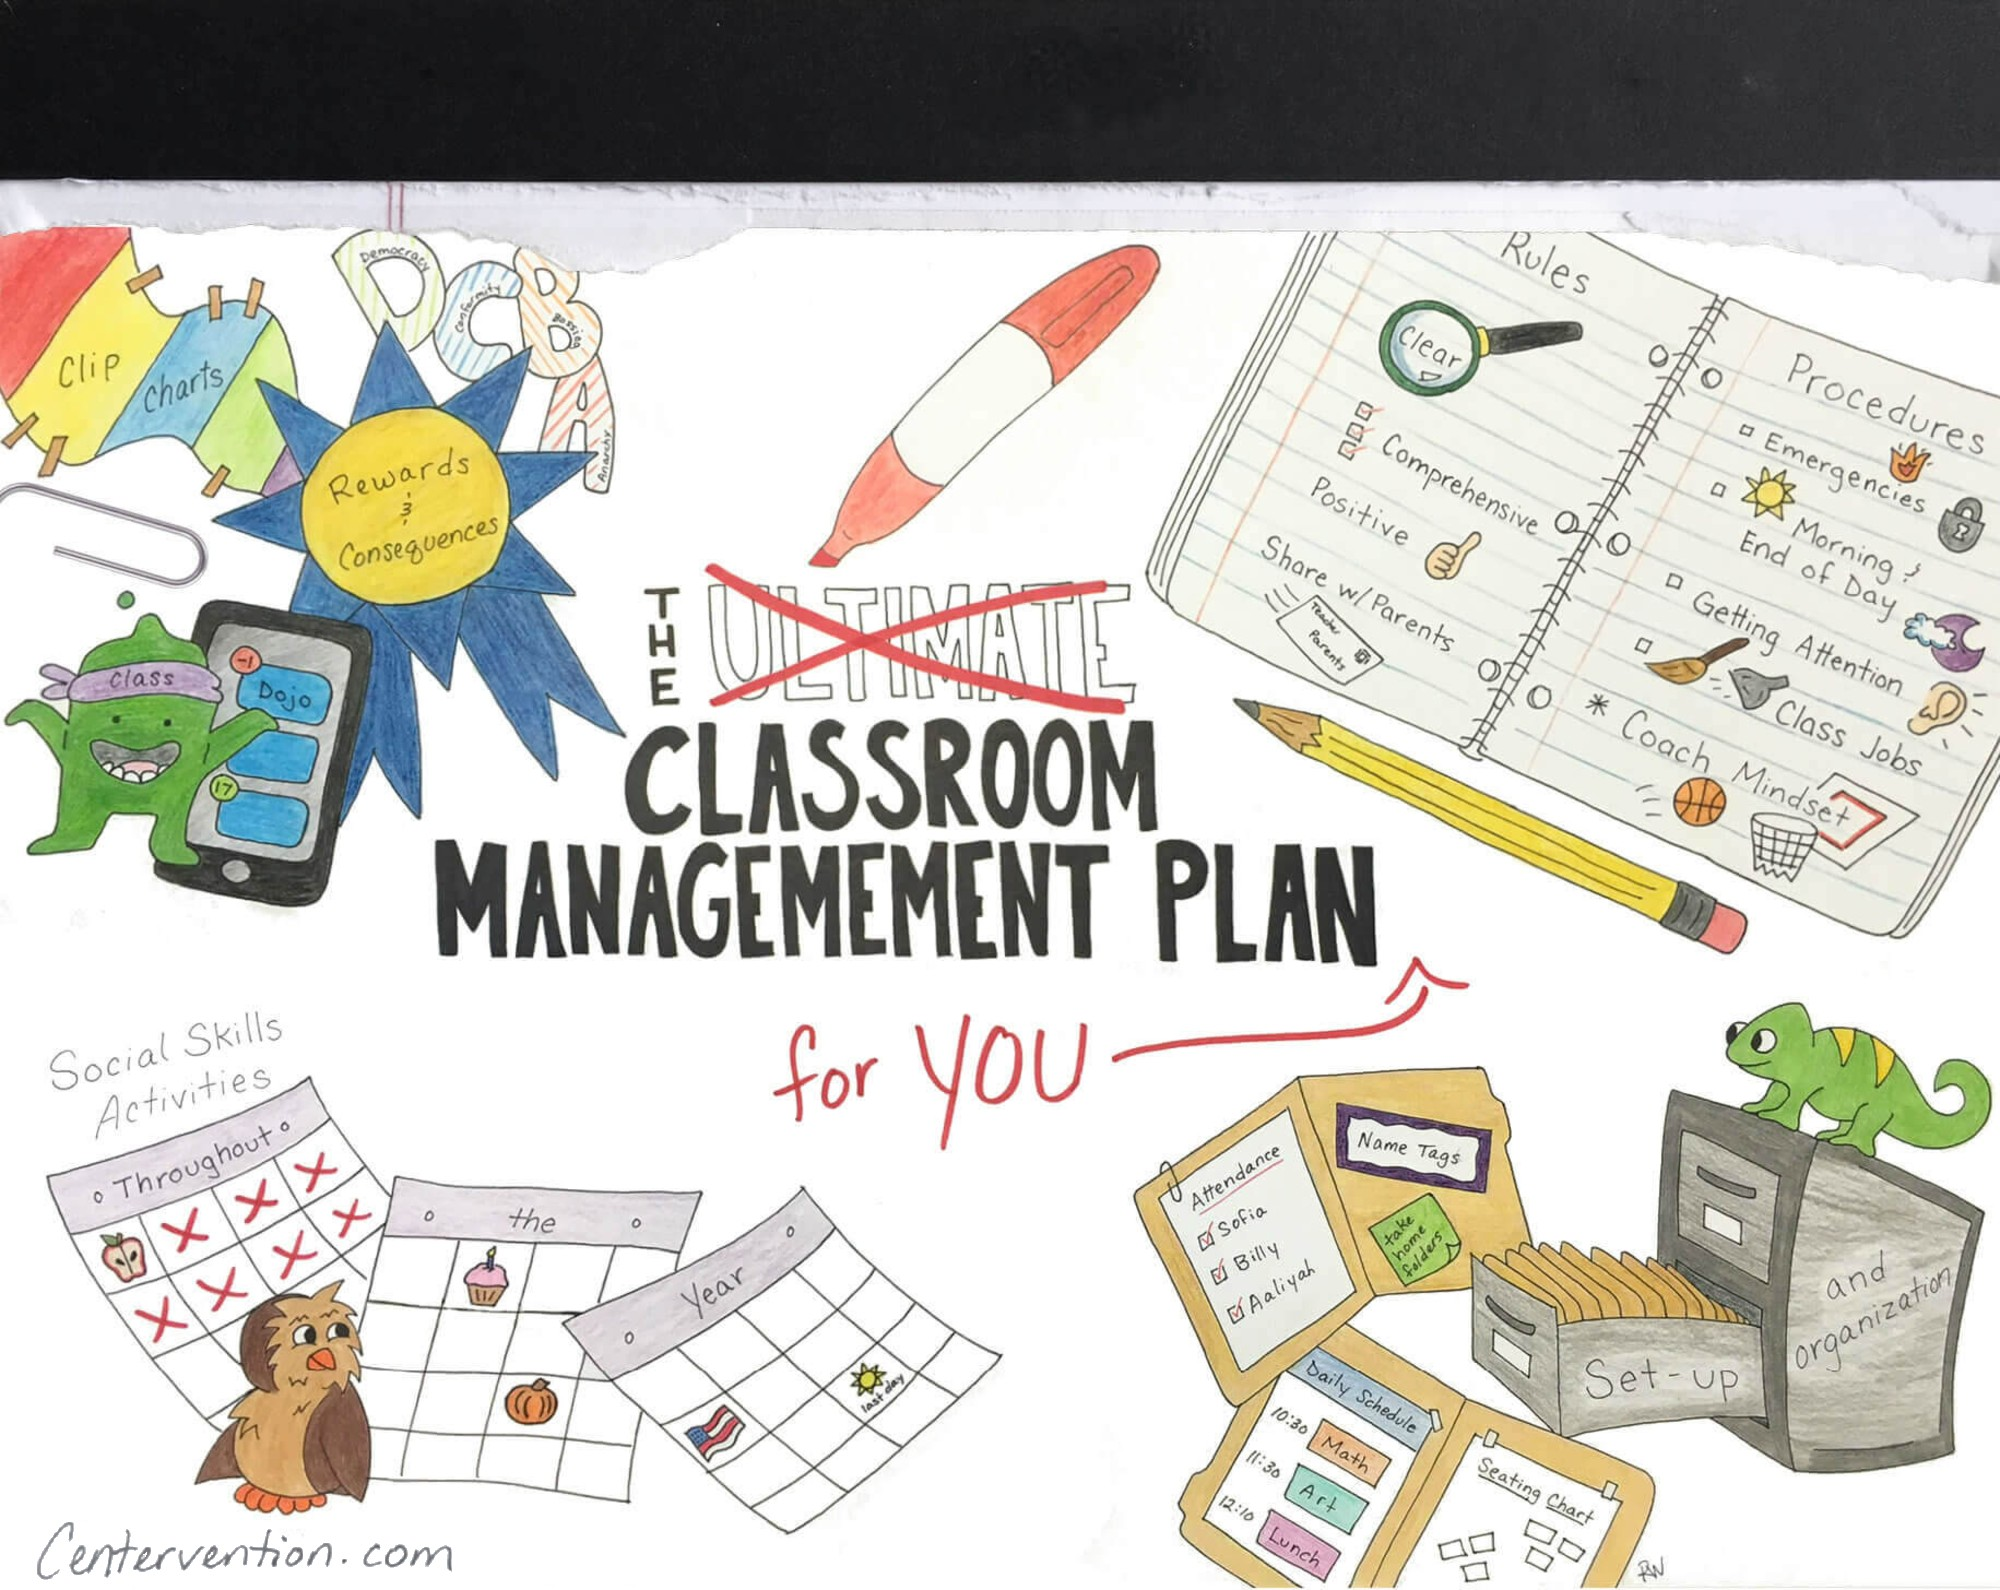 A Classroom Management Plan for Elementary School Teachers